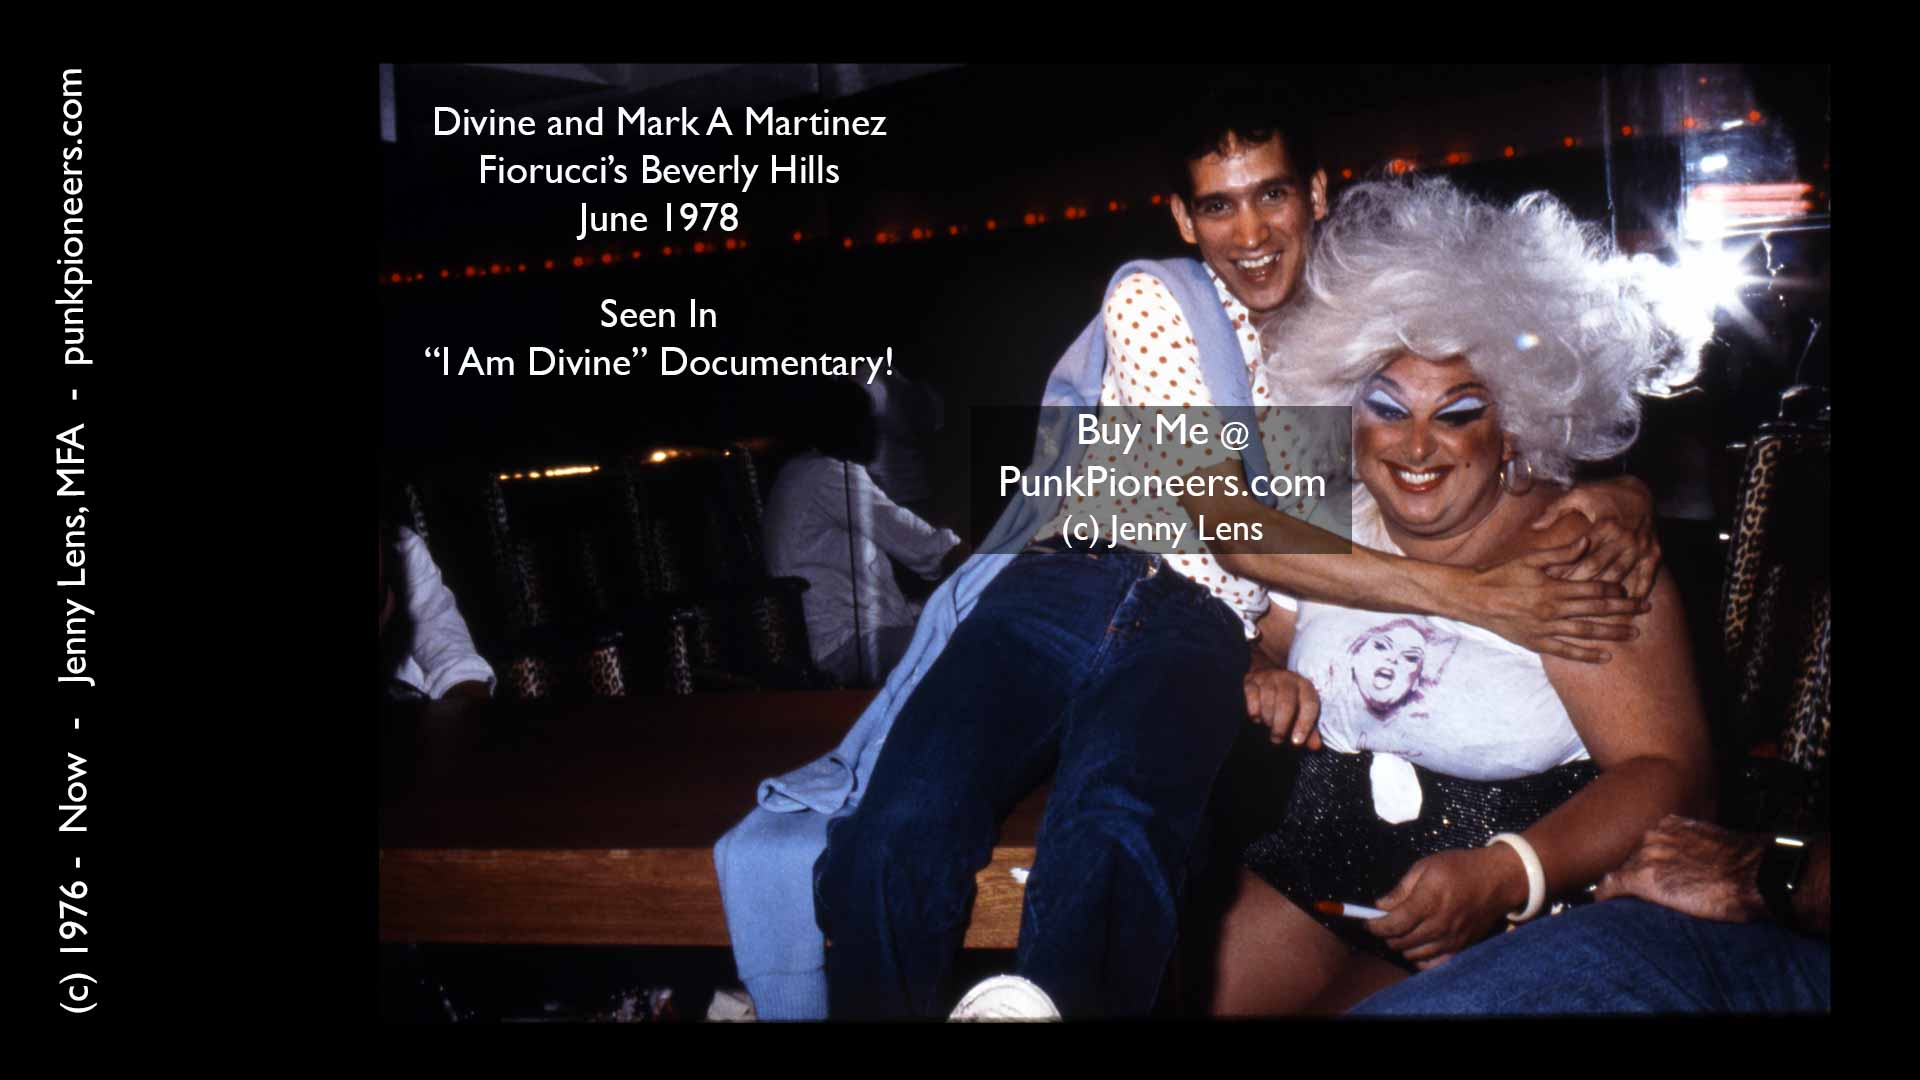 Divine and Mark A Martinez, Fiorucci Beverly Hills, June 1978, Jenny Lens, PunkPioneers.com